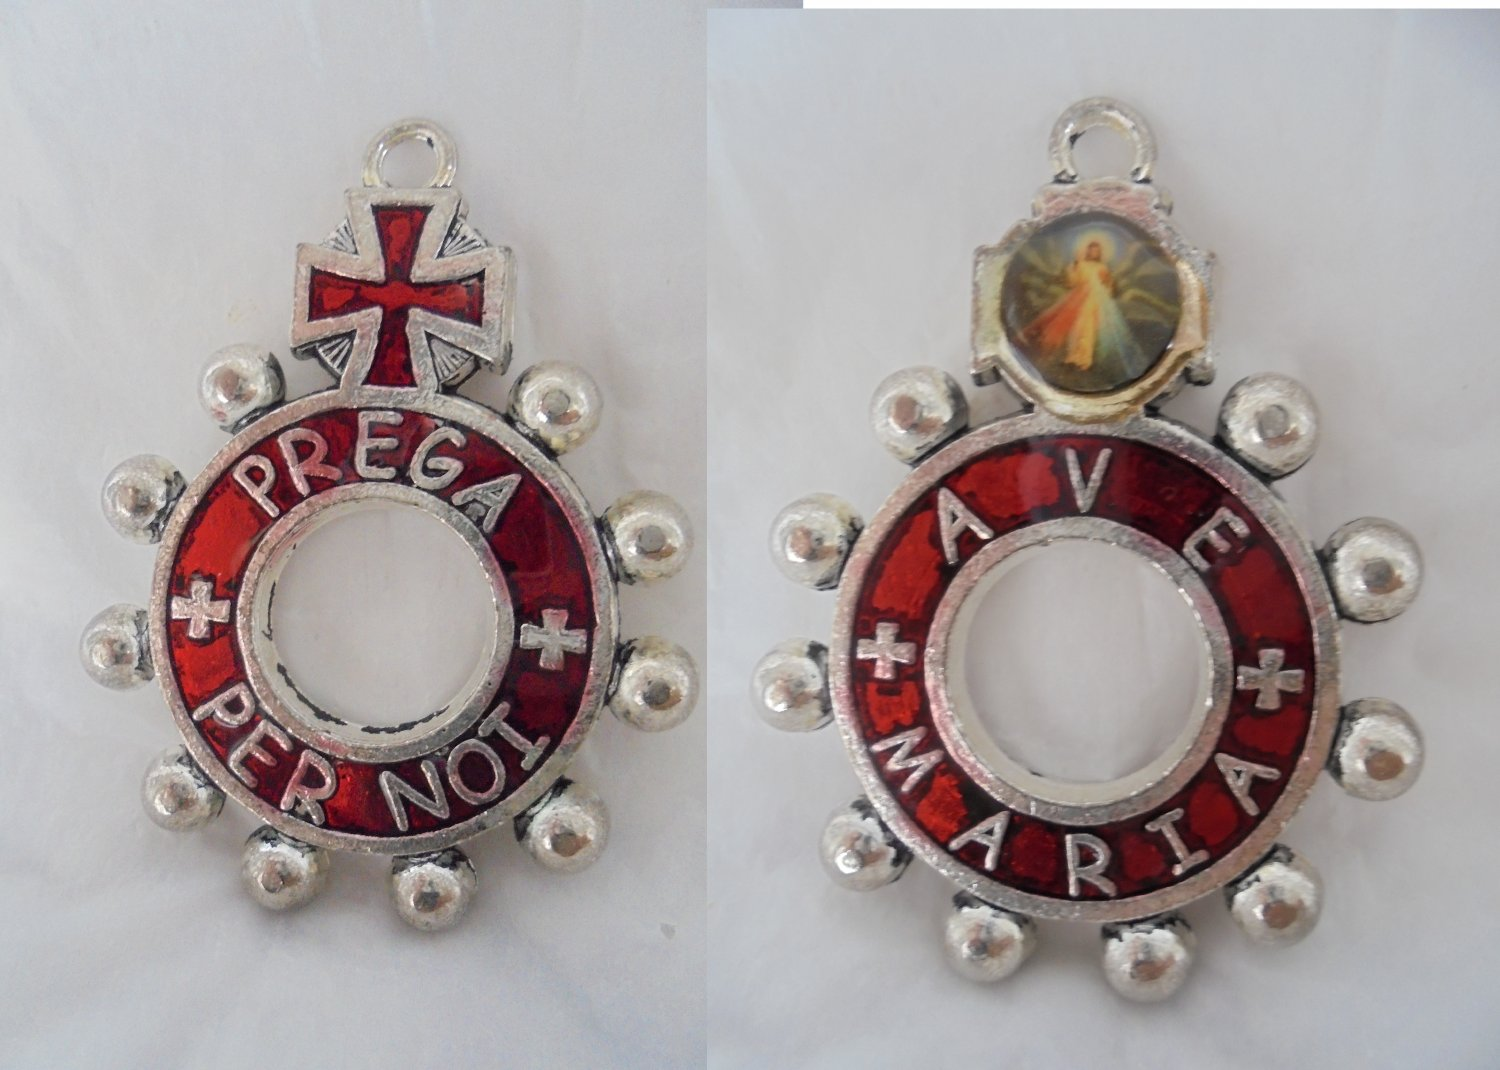 Praying ROSARY BOY SCOUTS ring lacqe in red color Original